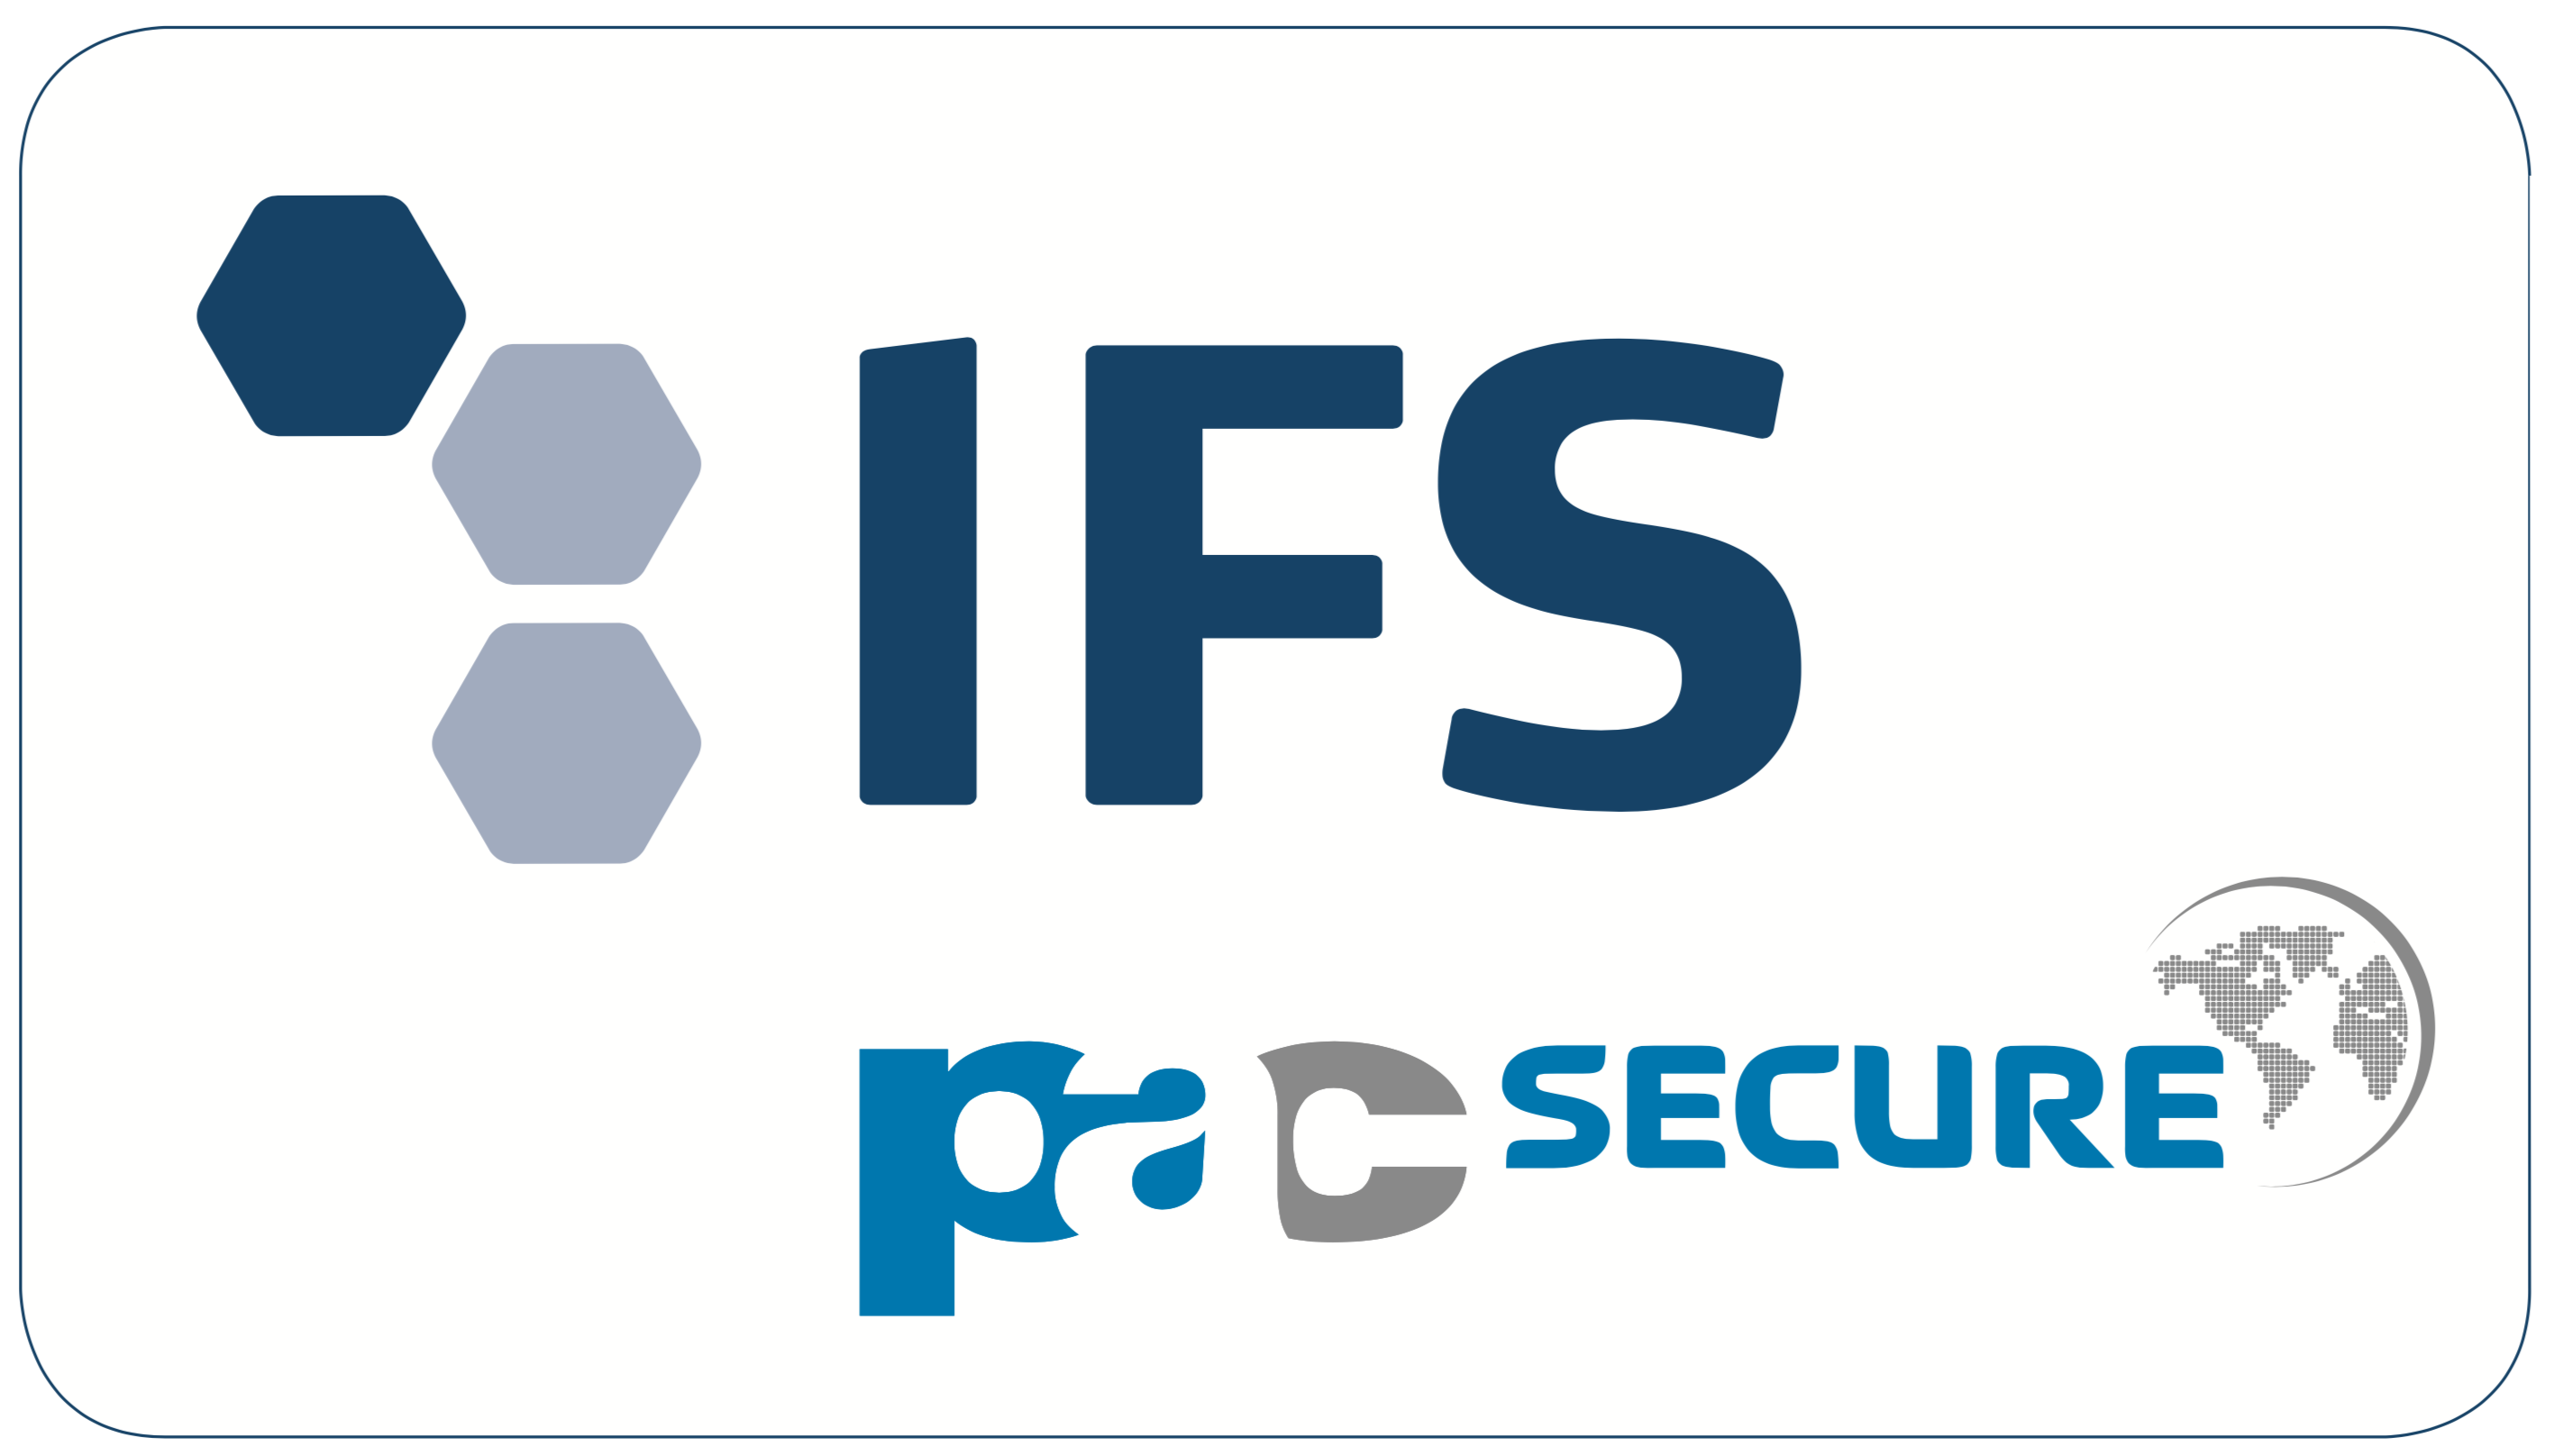 Certificación IFS PACsecure